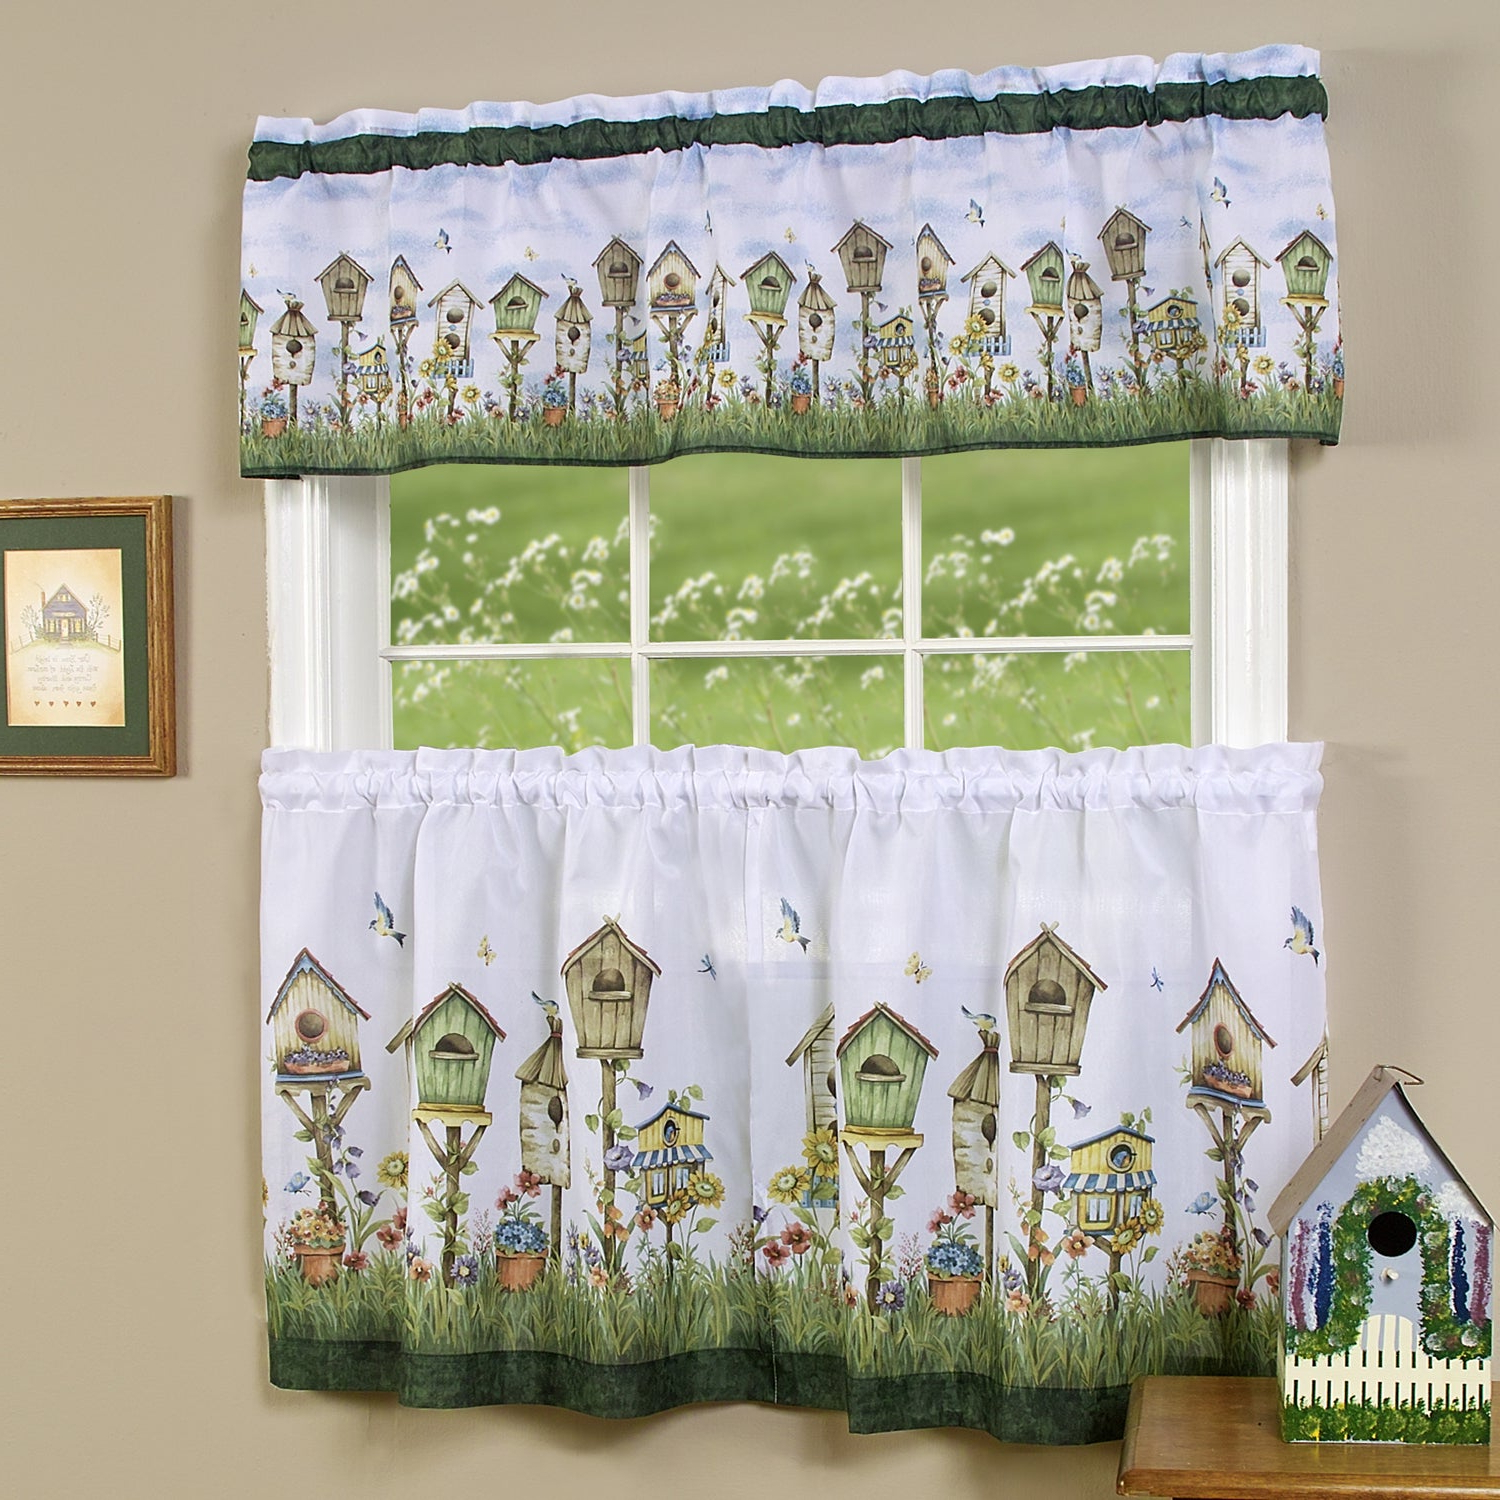 Most Current Traditional Two Piece Tailored Tier And Valance Window Curtains With Regard To Traditional Two Piece Tailored Tier And Valance Window Curtains Set With Whimsical Birdhouse Print – 36 Inch (Gallery 4 of 20)